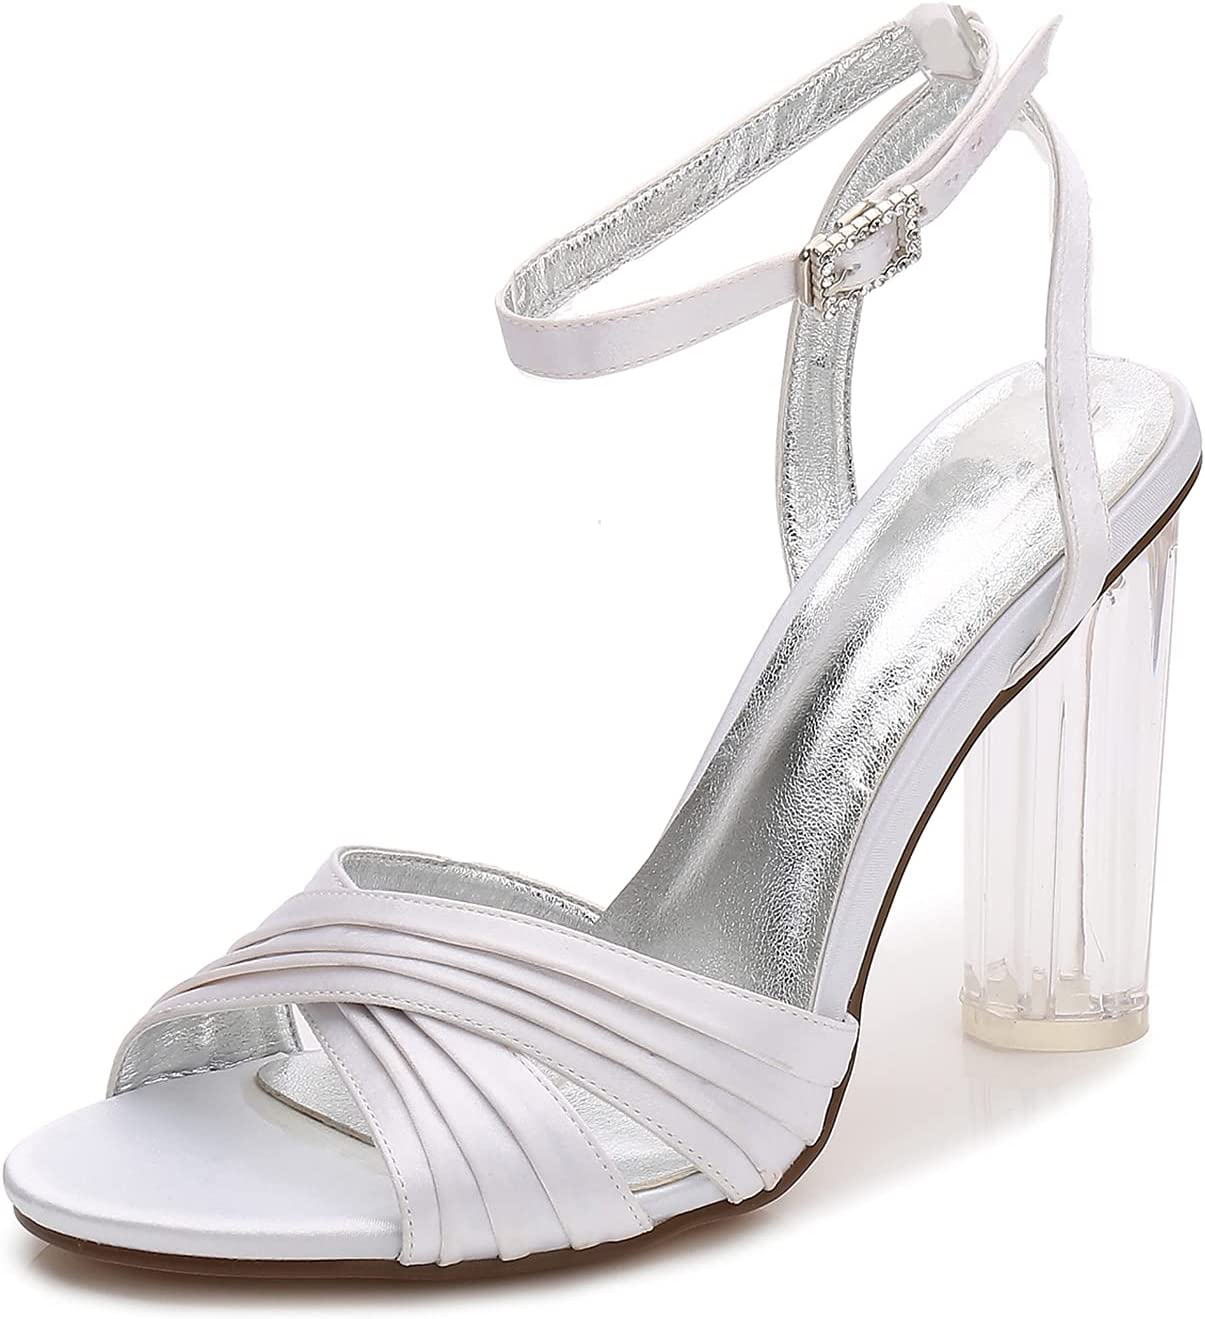 NYPB Women's Crystal Sandals Open Toe St High 3.94in Pumps Austin Mall Limited price Heels